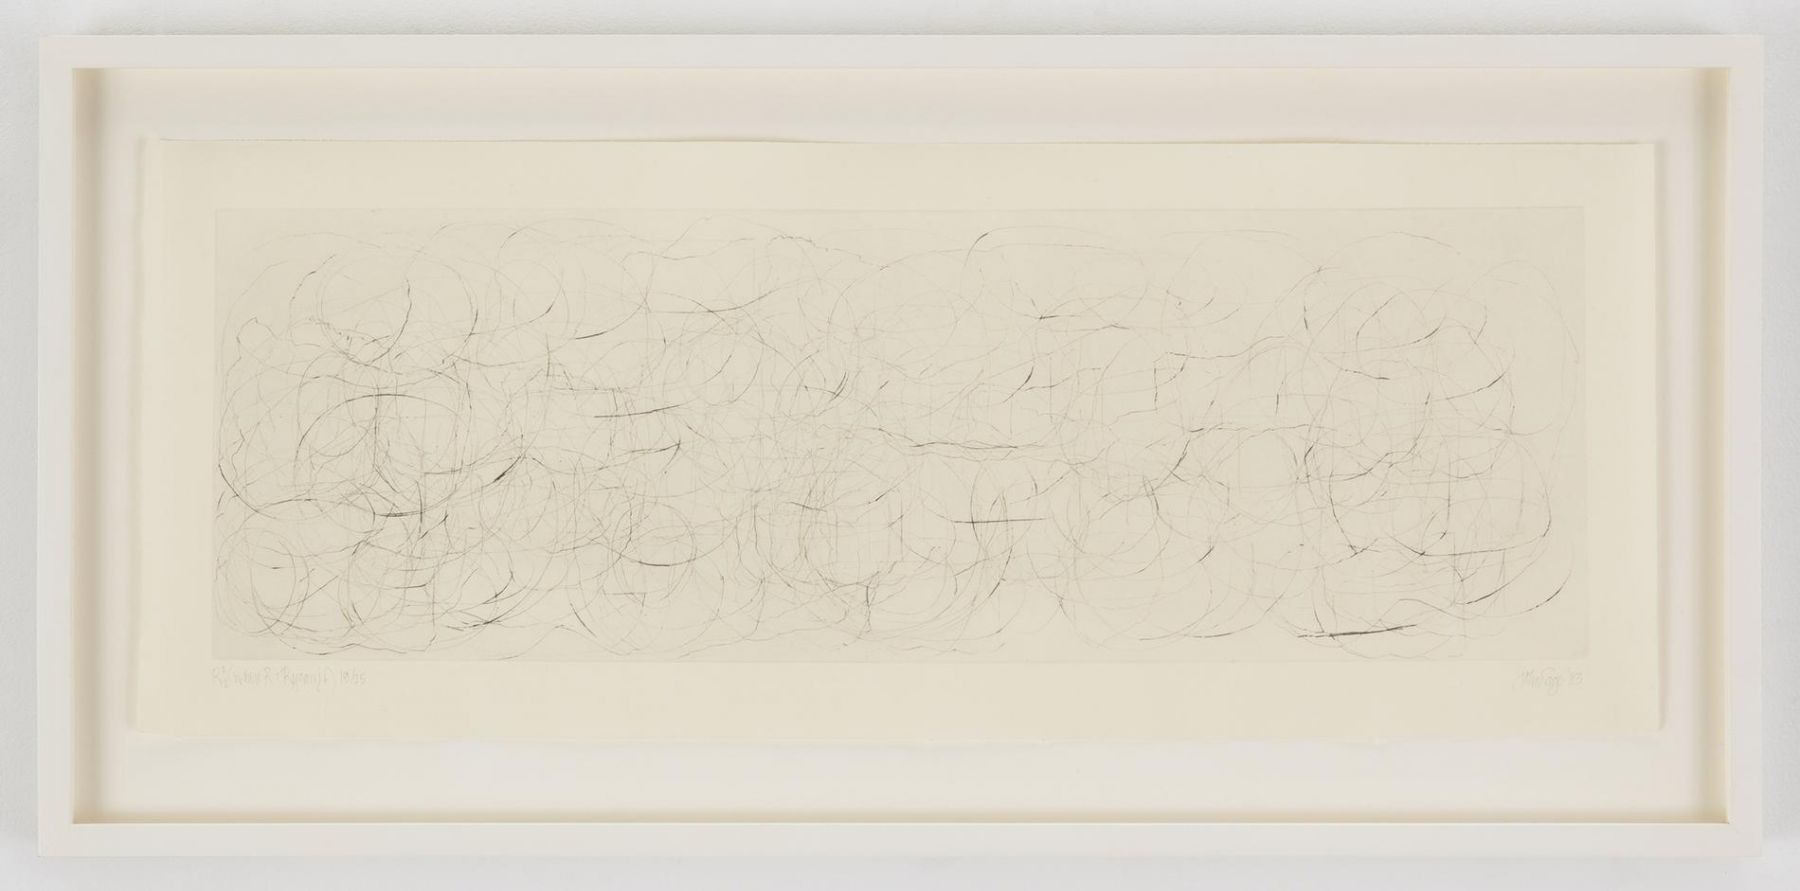 , JOHN CAGE(Where R = Ryoanji),1983Drypoint, Set of 4Each: 9 1/4 x 23 1/4 in. (23.5 x 59 cm)Edition of 25